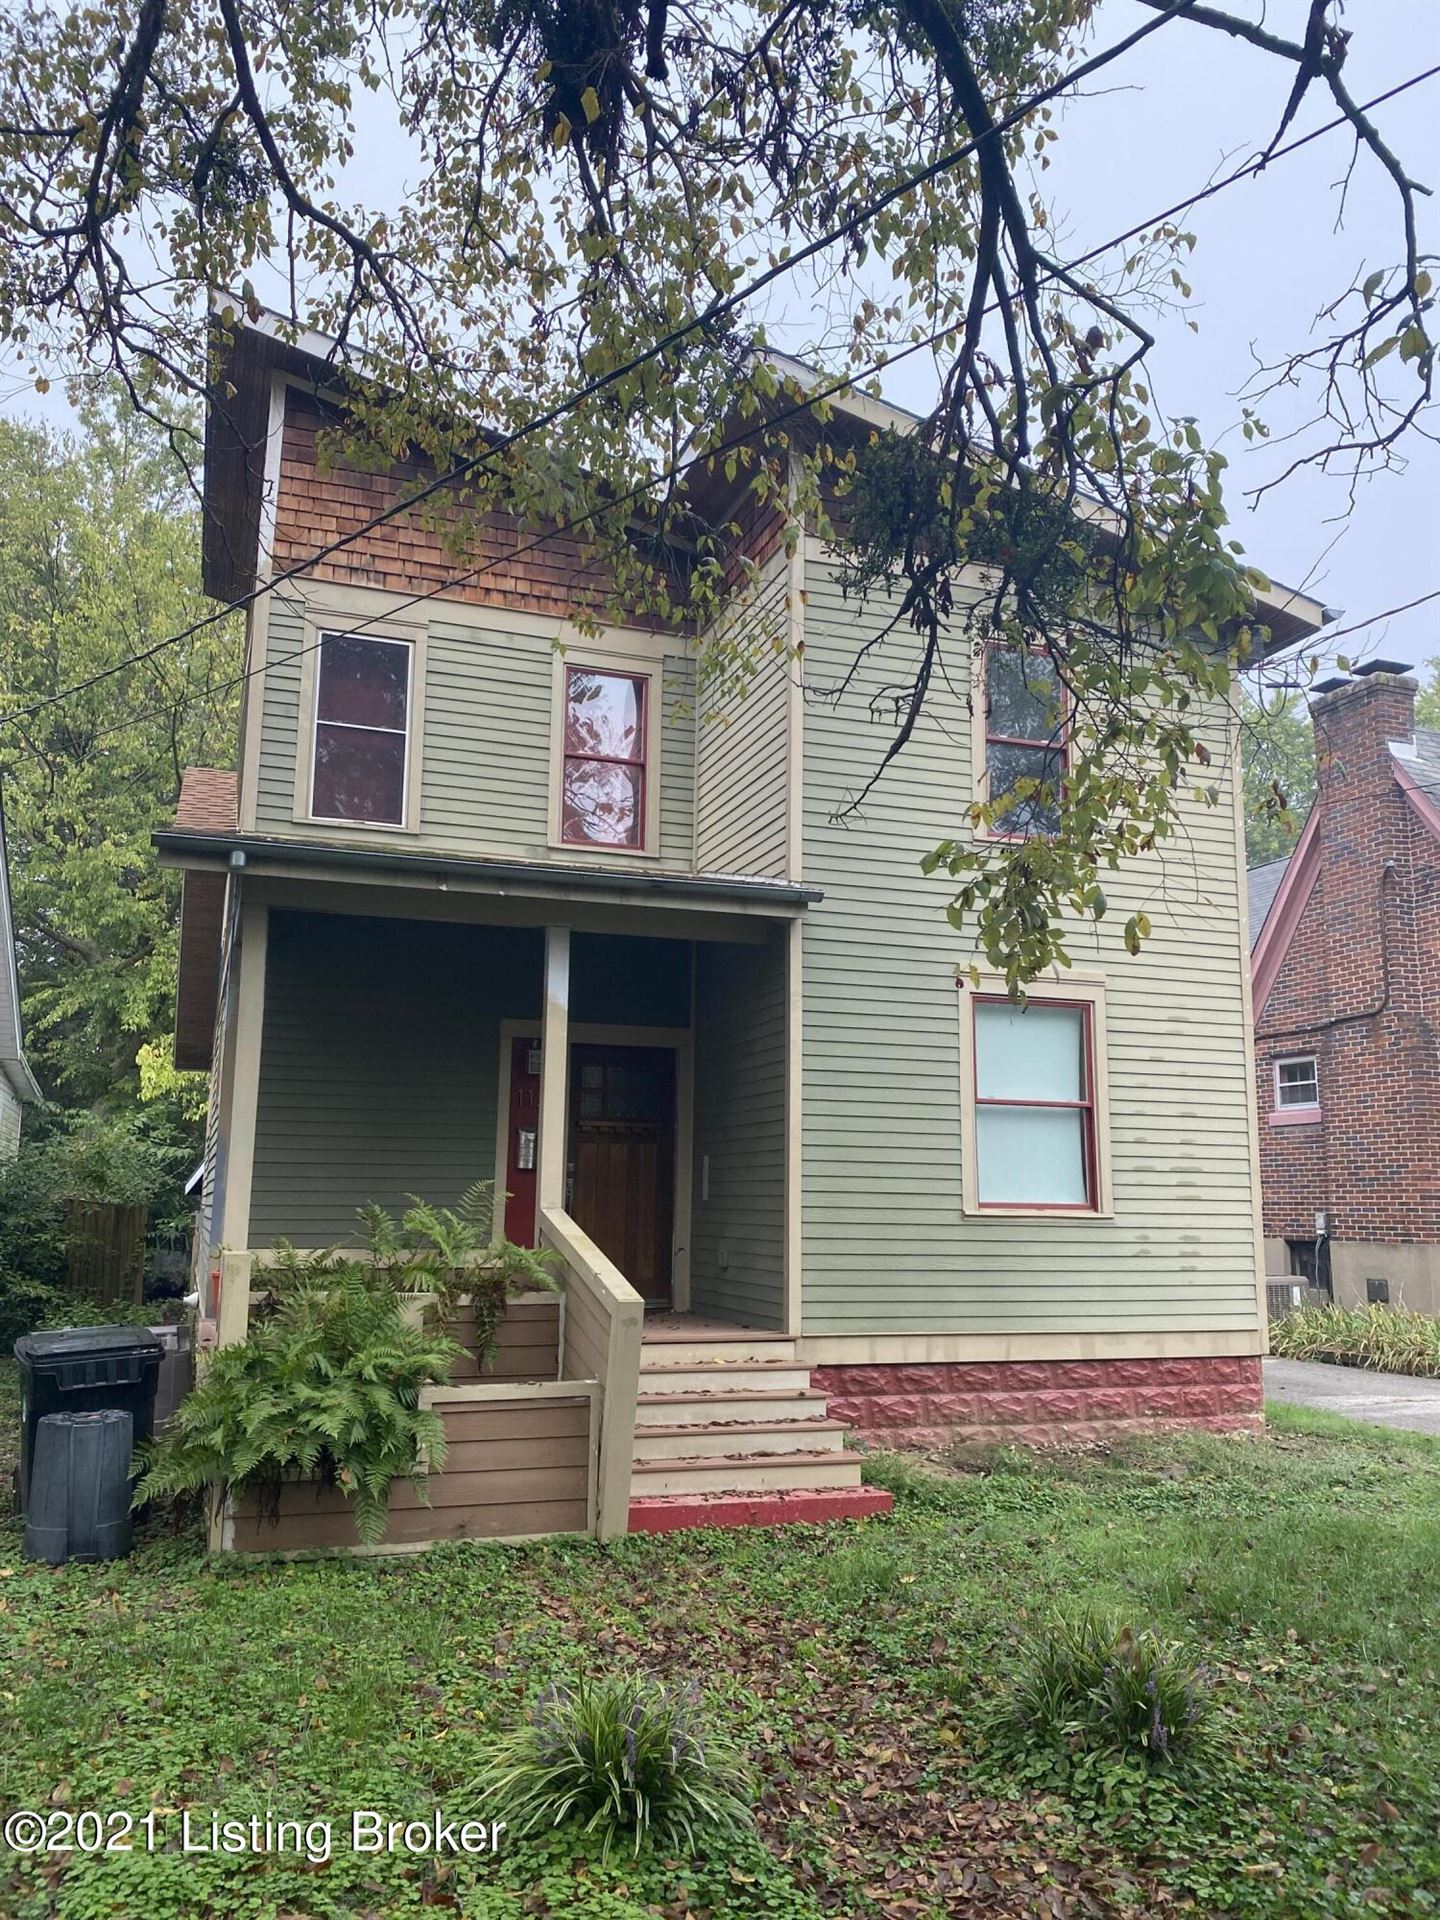 Photo for 112 Claremont Ave, Louisville, KY 40206 (MLS # 1598111)